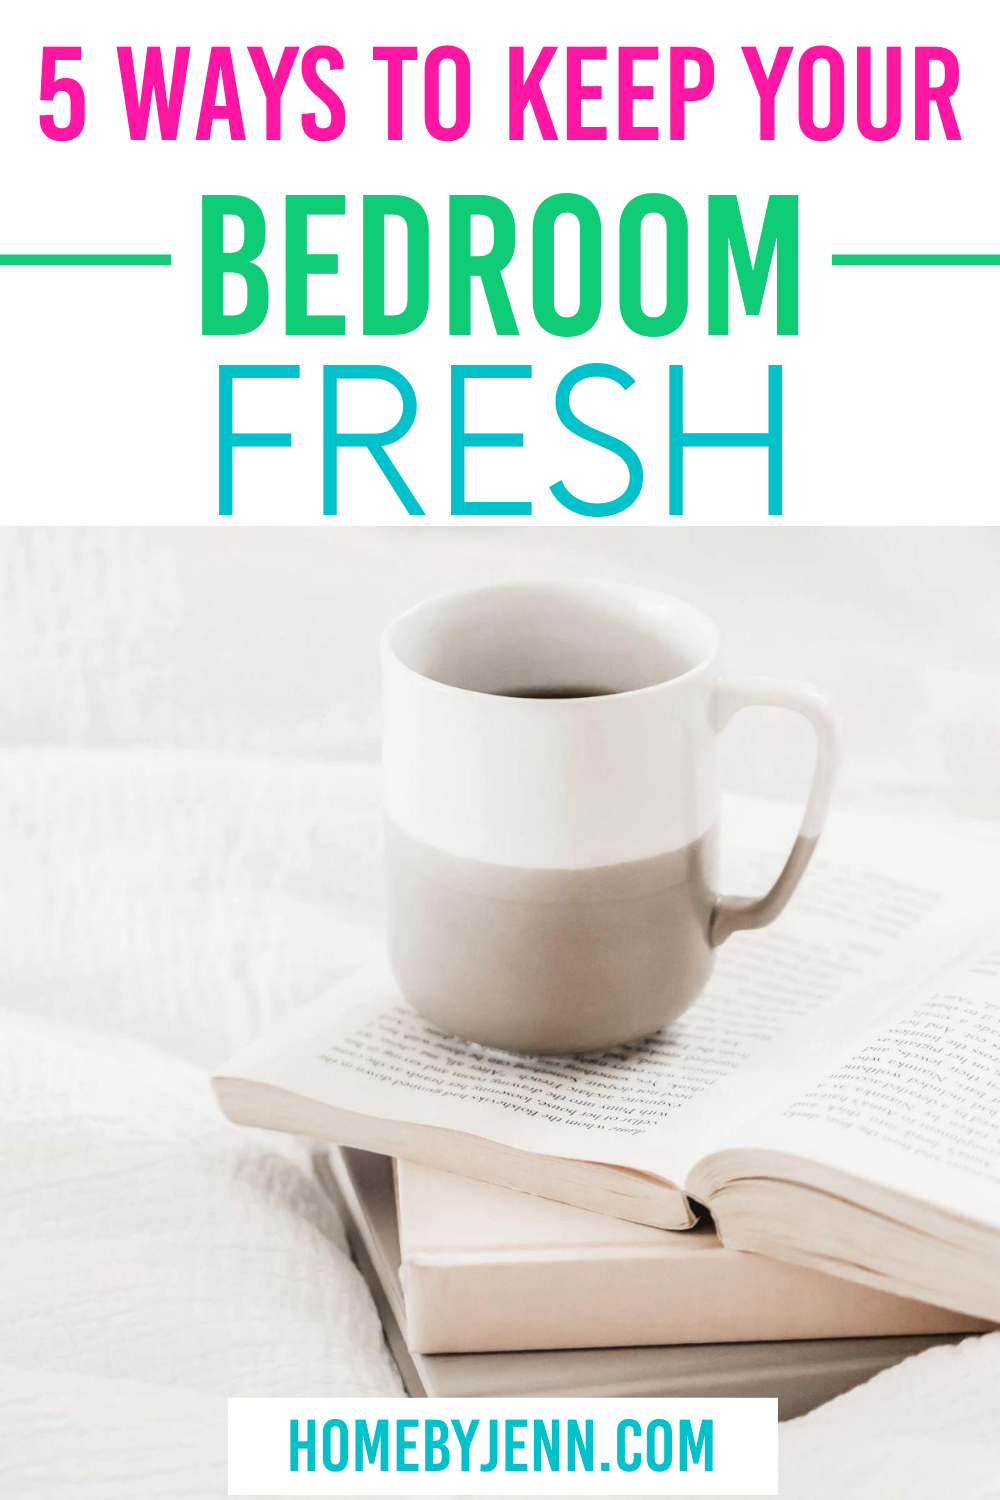 If you're ready to keep your bedroom fresh each day, it just requires a few simple tips on your part to make it happen. Once you get into a rhythm, you'll find that your bedroom feels nice, new, and clean every single day. via @homebyjenn